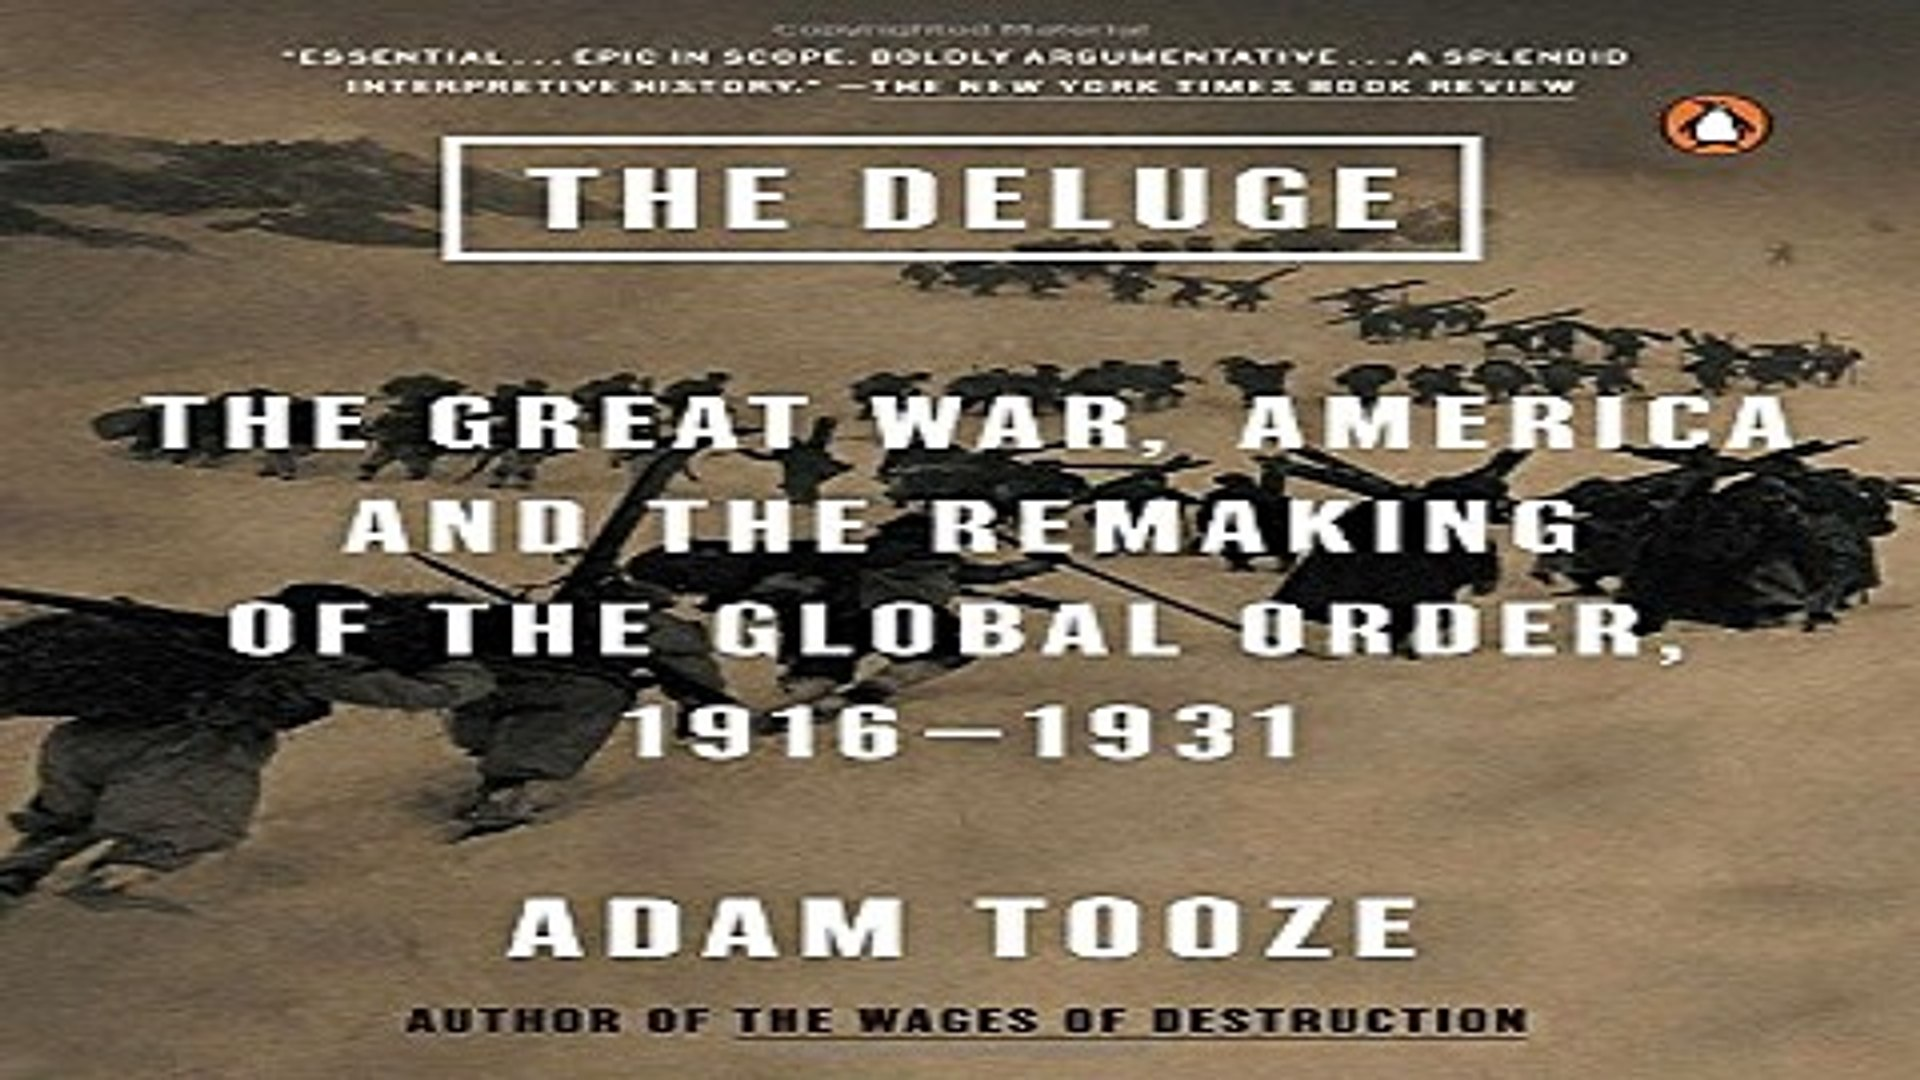 Read The Deluge  The Great War  America and the Remaking of the Global Order  1916 1931 Ebook pdf